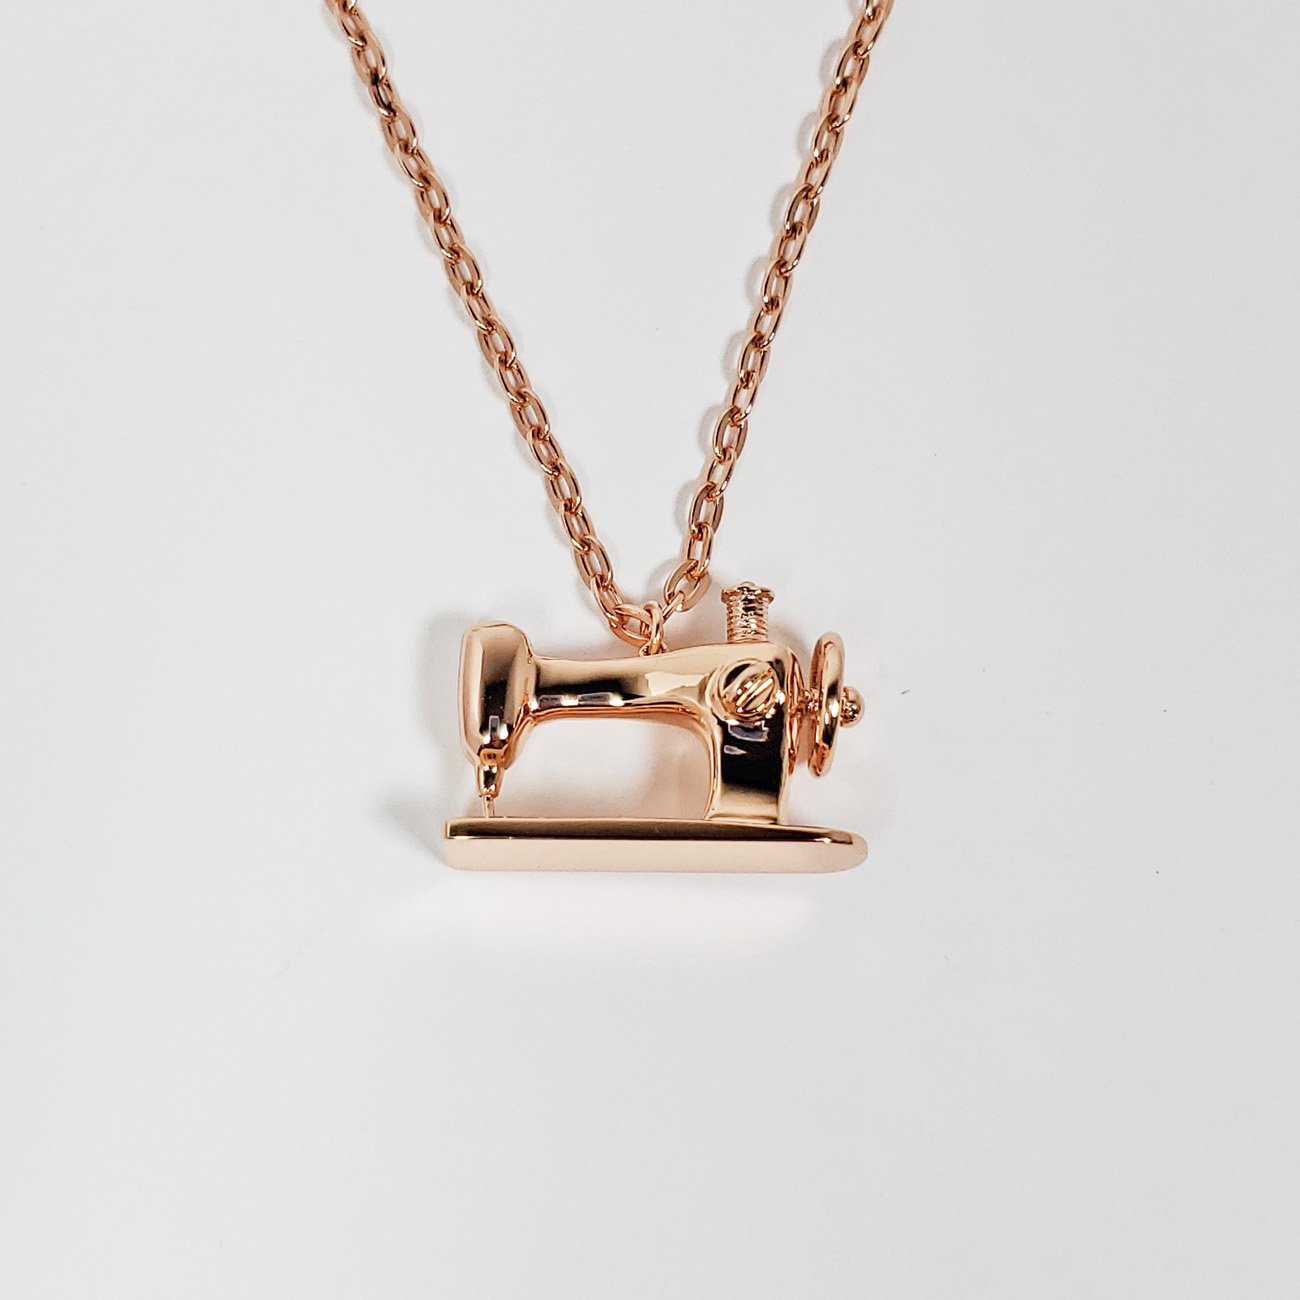 Sewing Machine Long Pendant Necklace Rose Gold